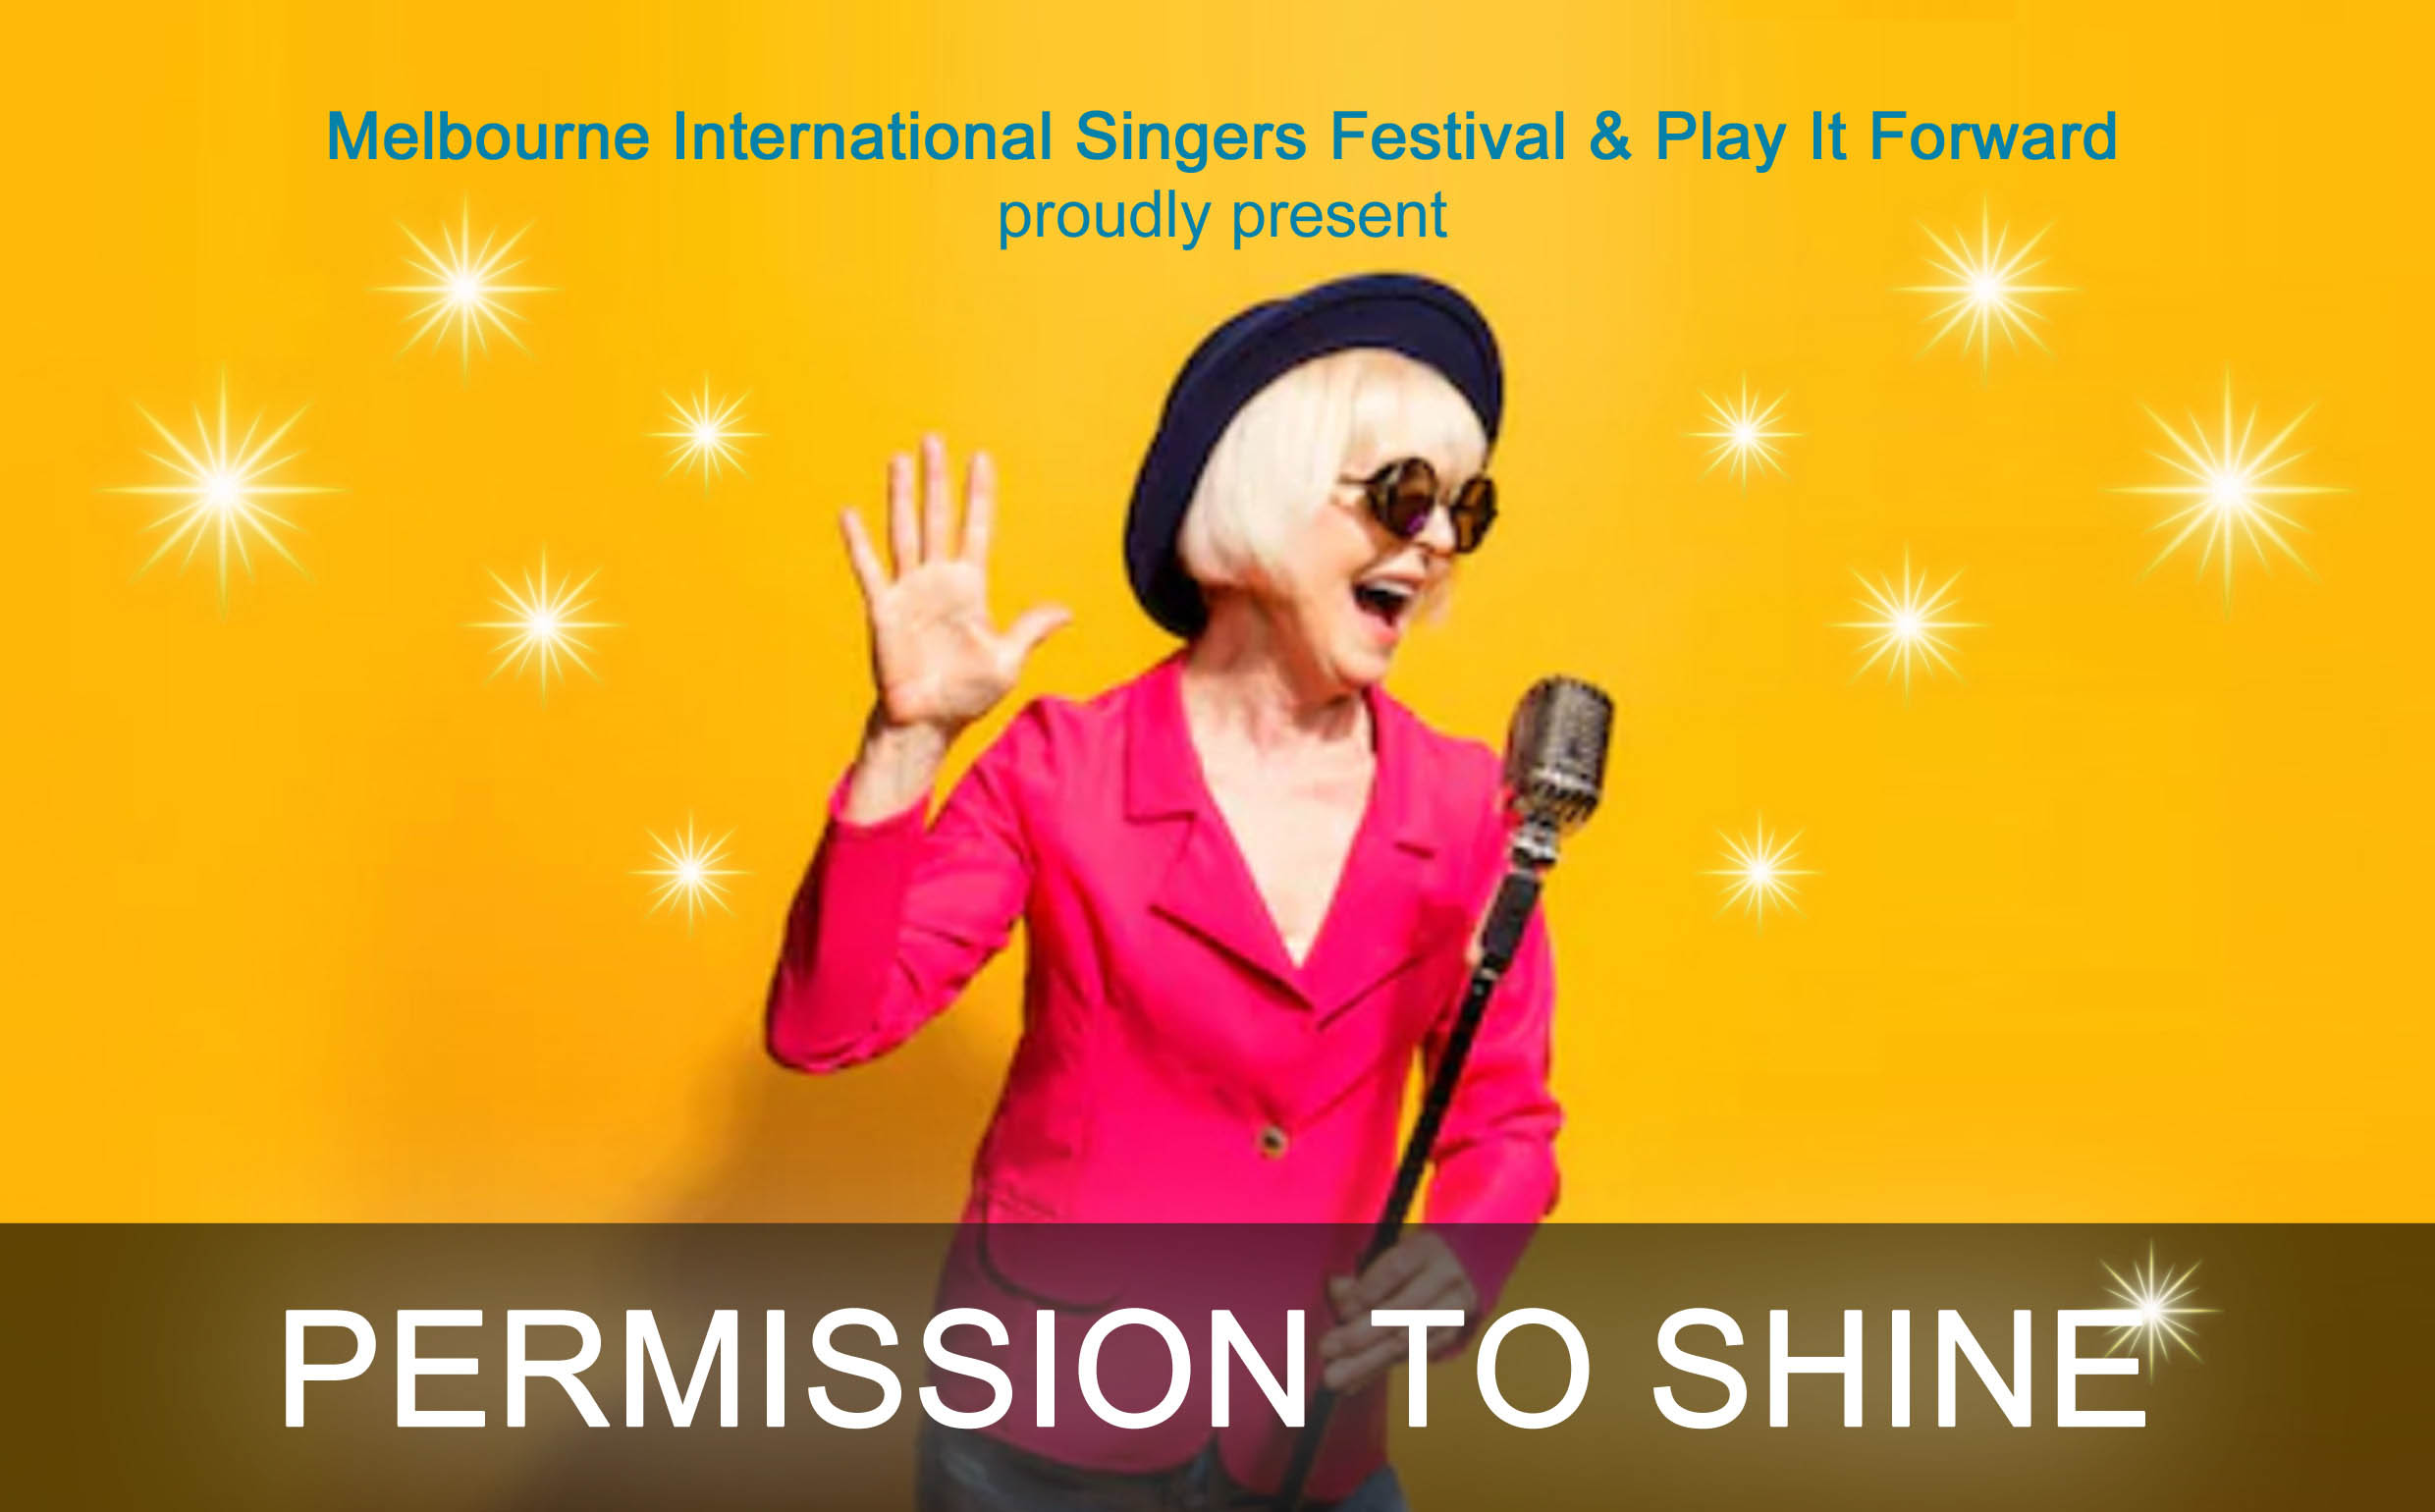 Permission To Shine MISF web event page.jpg